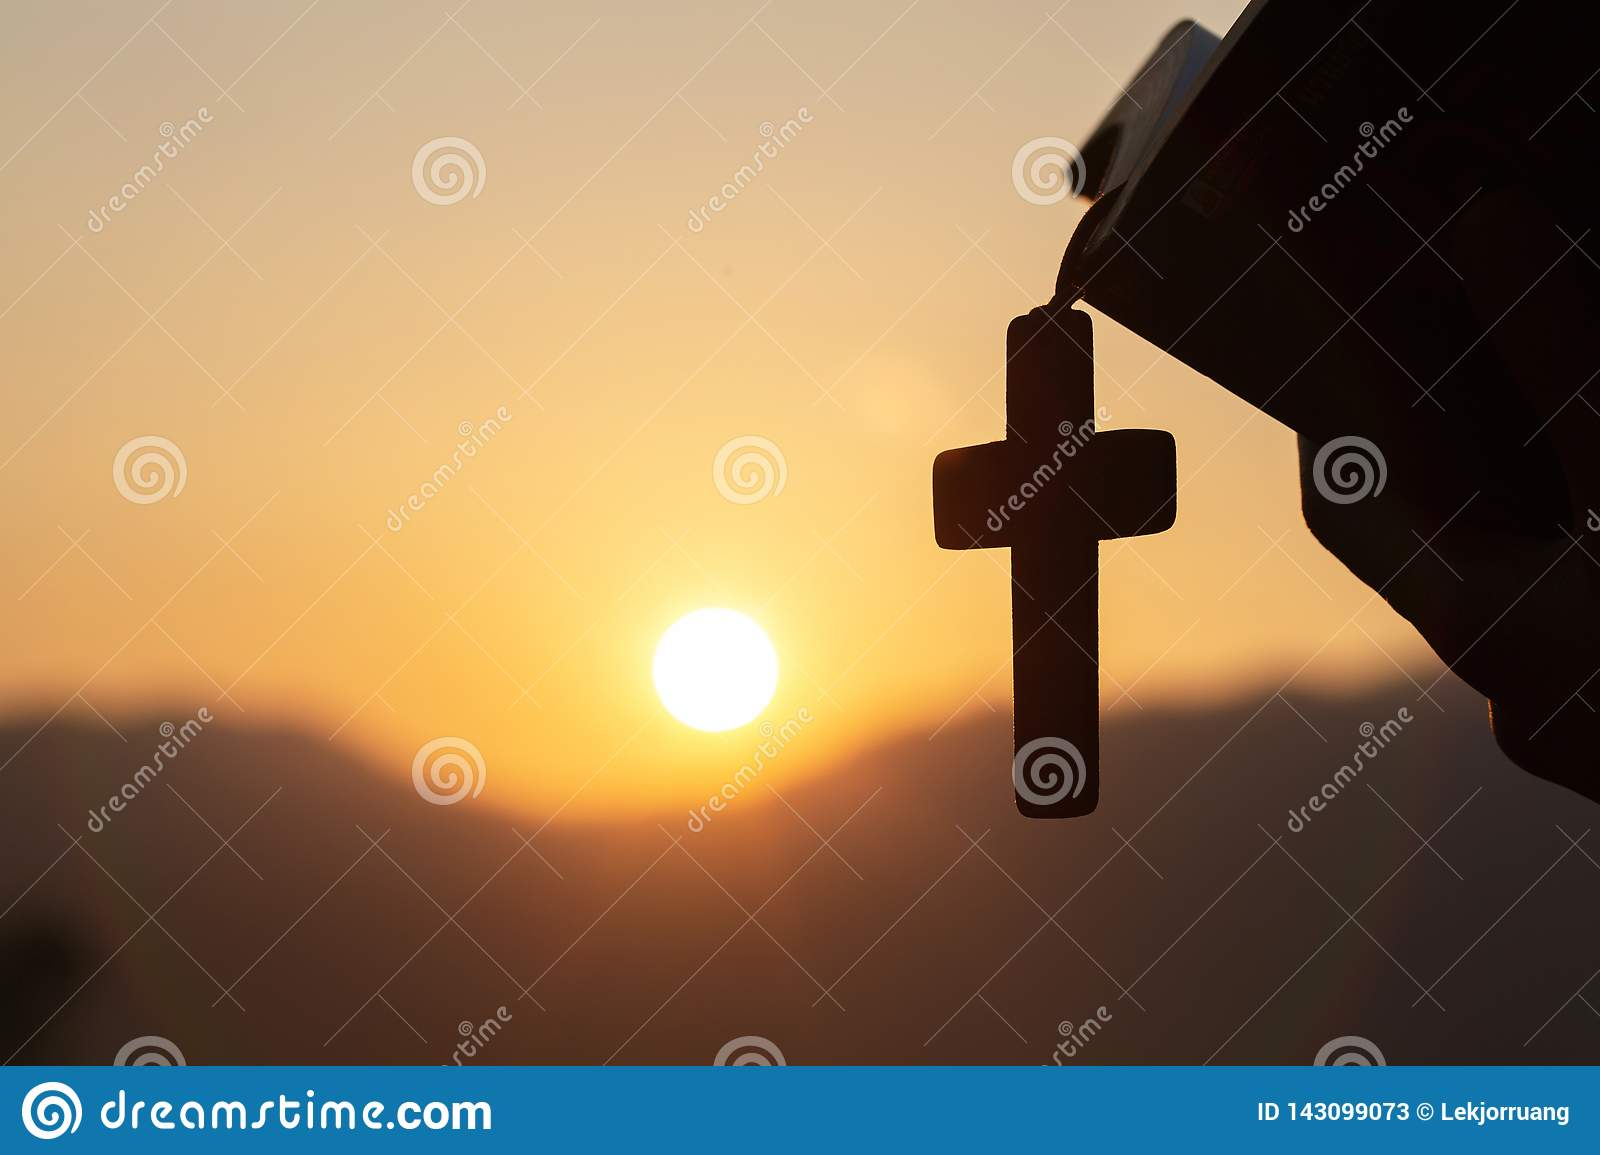 Siluette of Christian woman holding a bible and wooden Christian cross necklace while praying to God